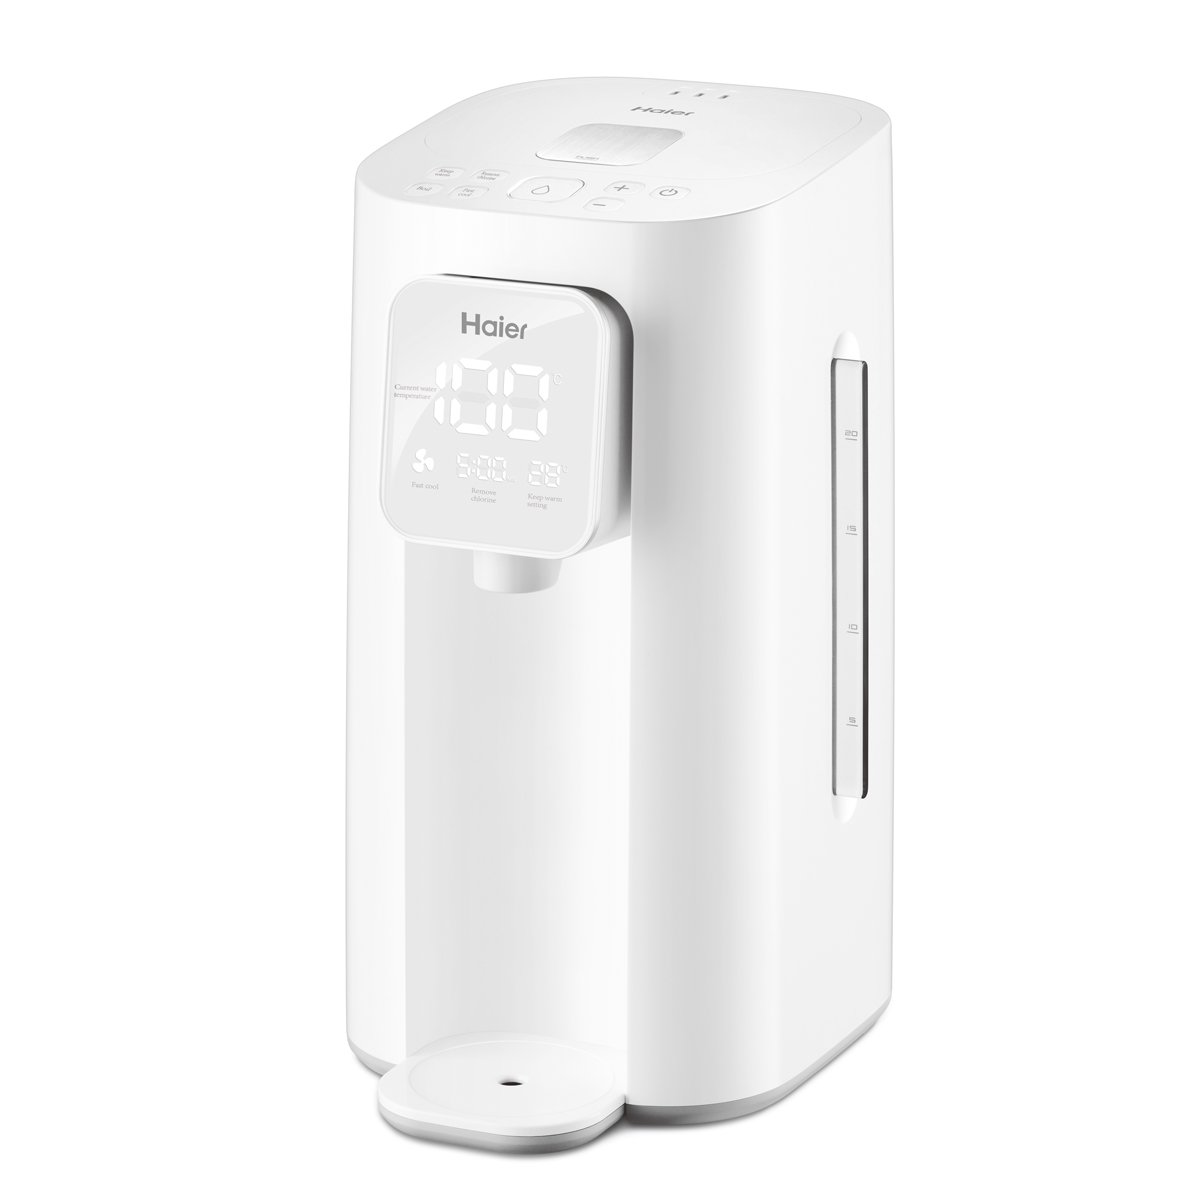 Haier HBM-F25 2.0 Liter Hybrid Water Boiler and Warmer, Hot Water Dispensers Hot&Cold Water 0℃~99℃ Adjustable with De-chlorination Technology, LED Digital Display Screen Stainless Steel Interior